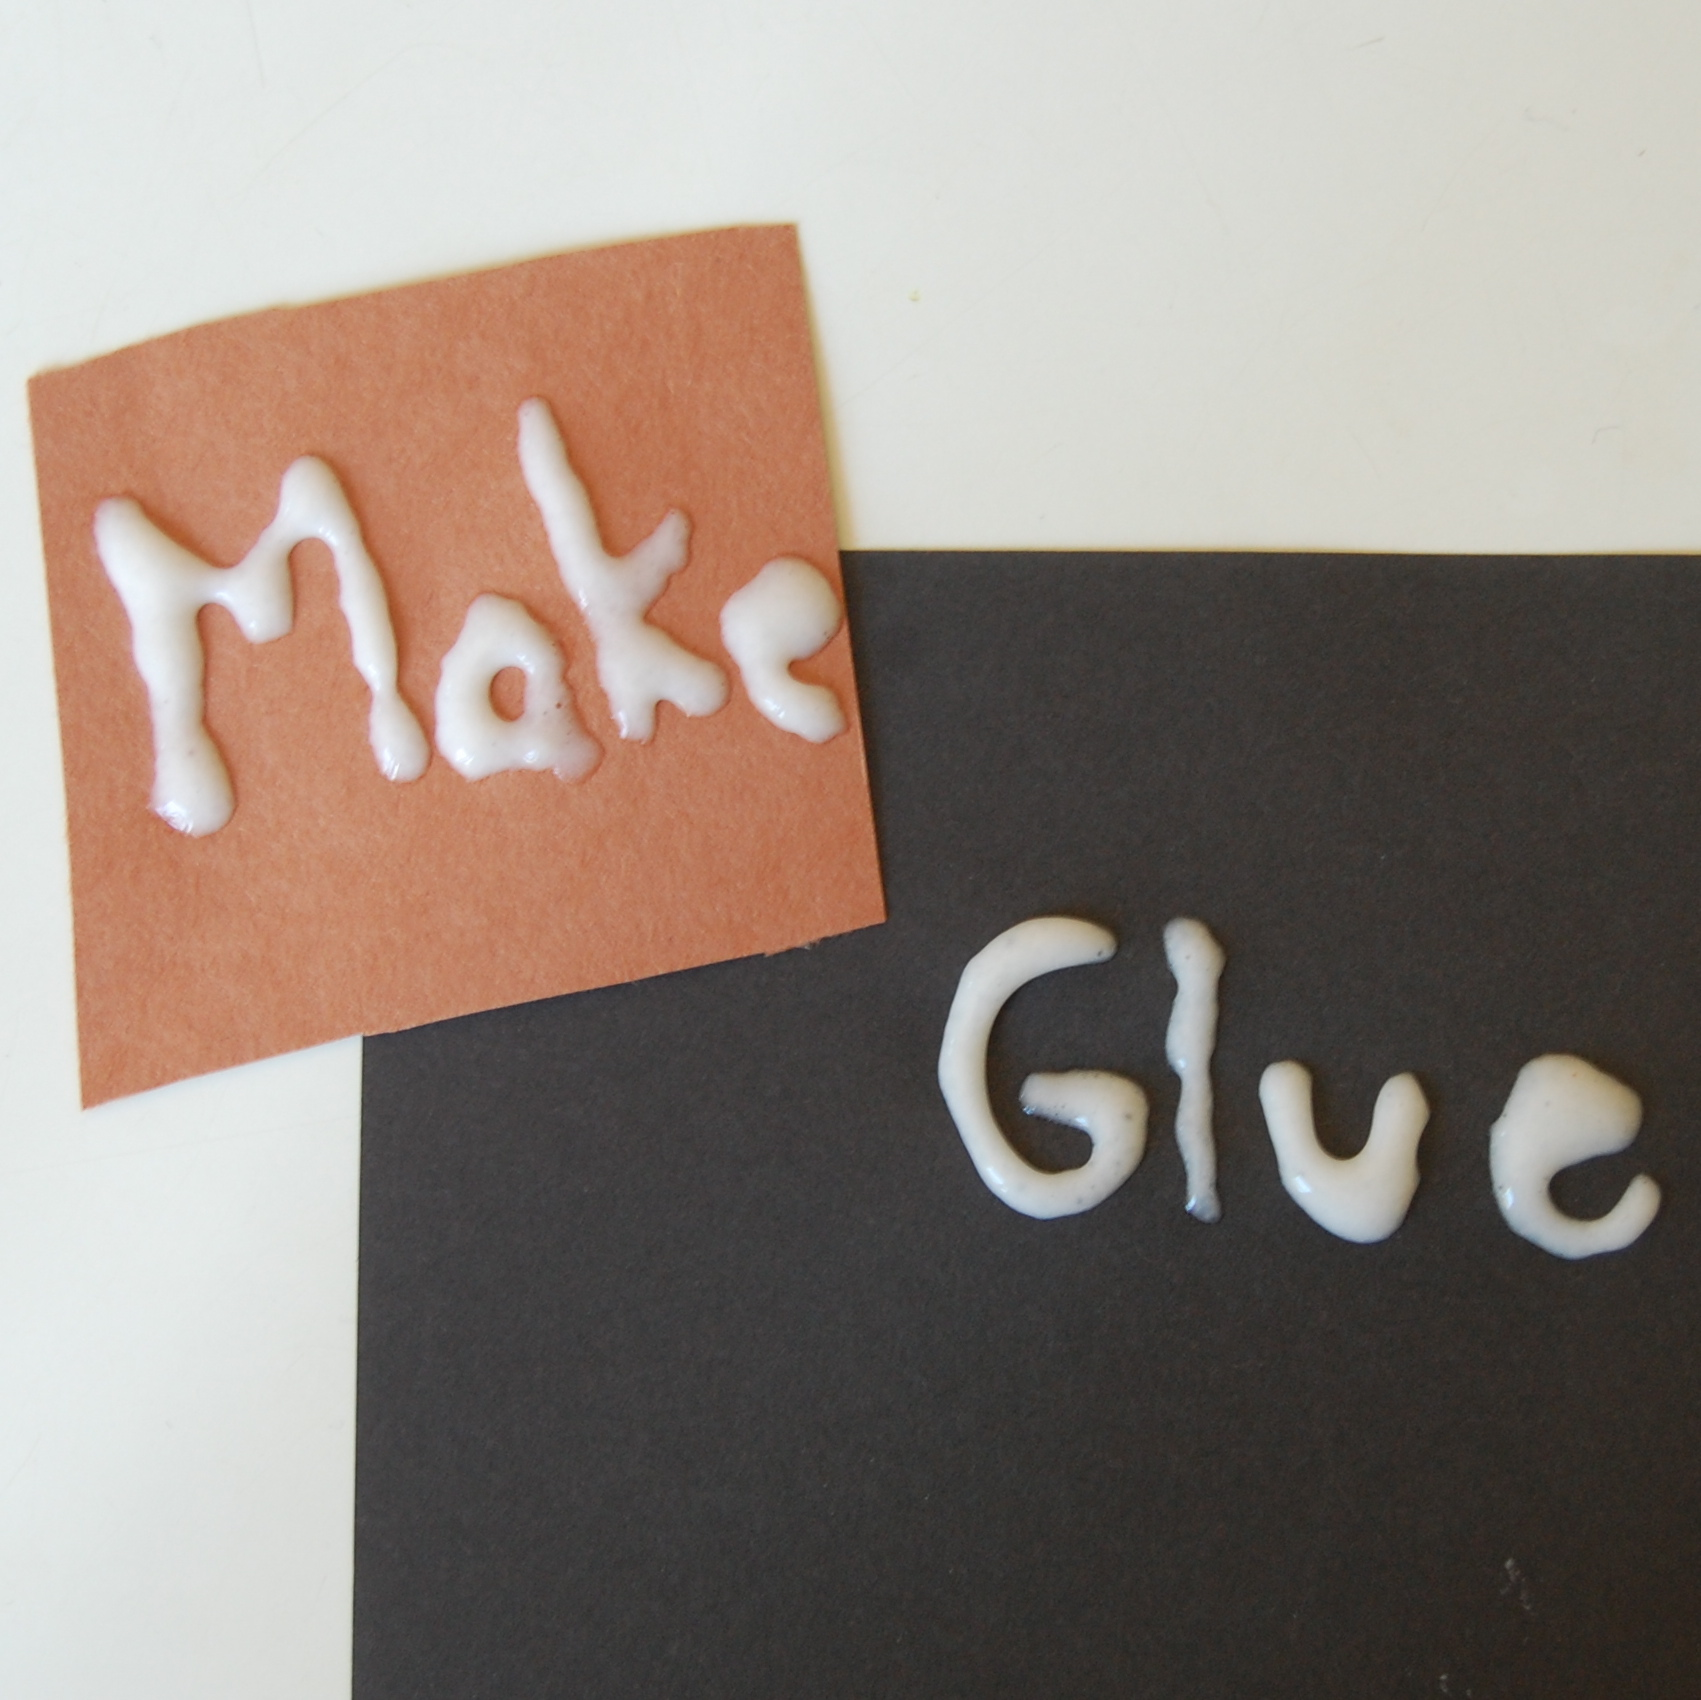 Make your own glue